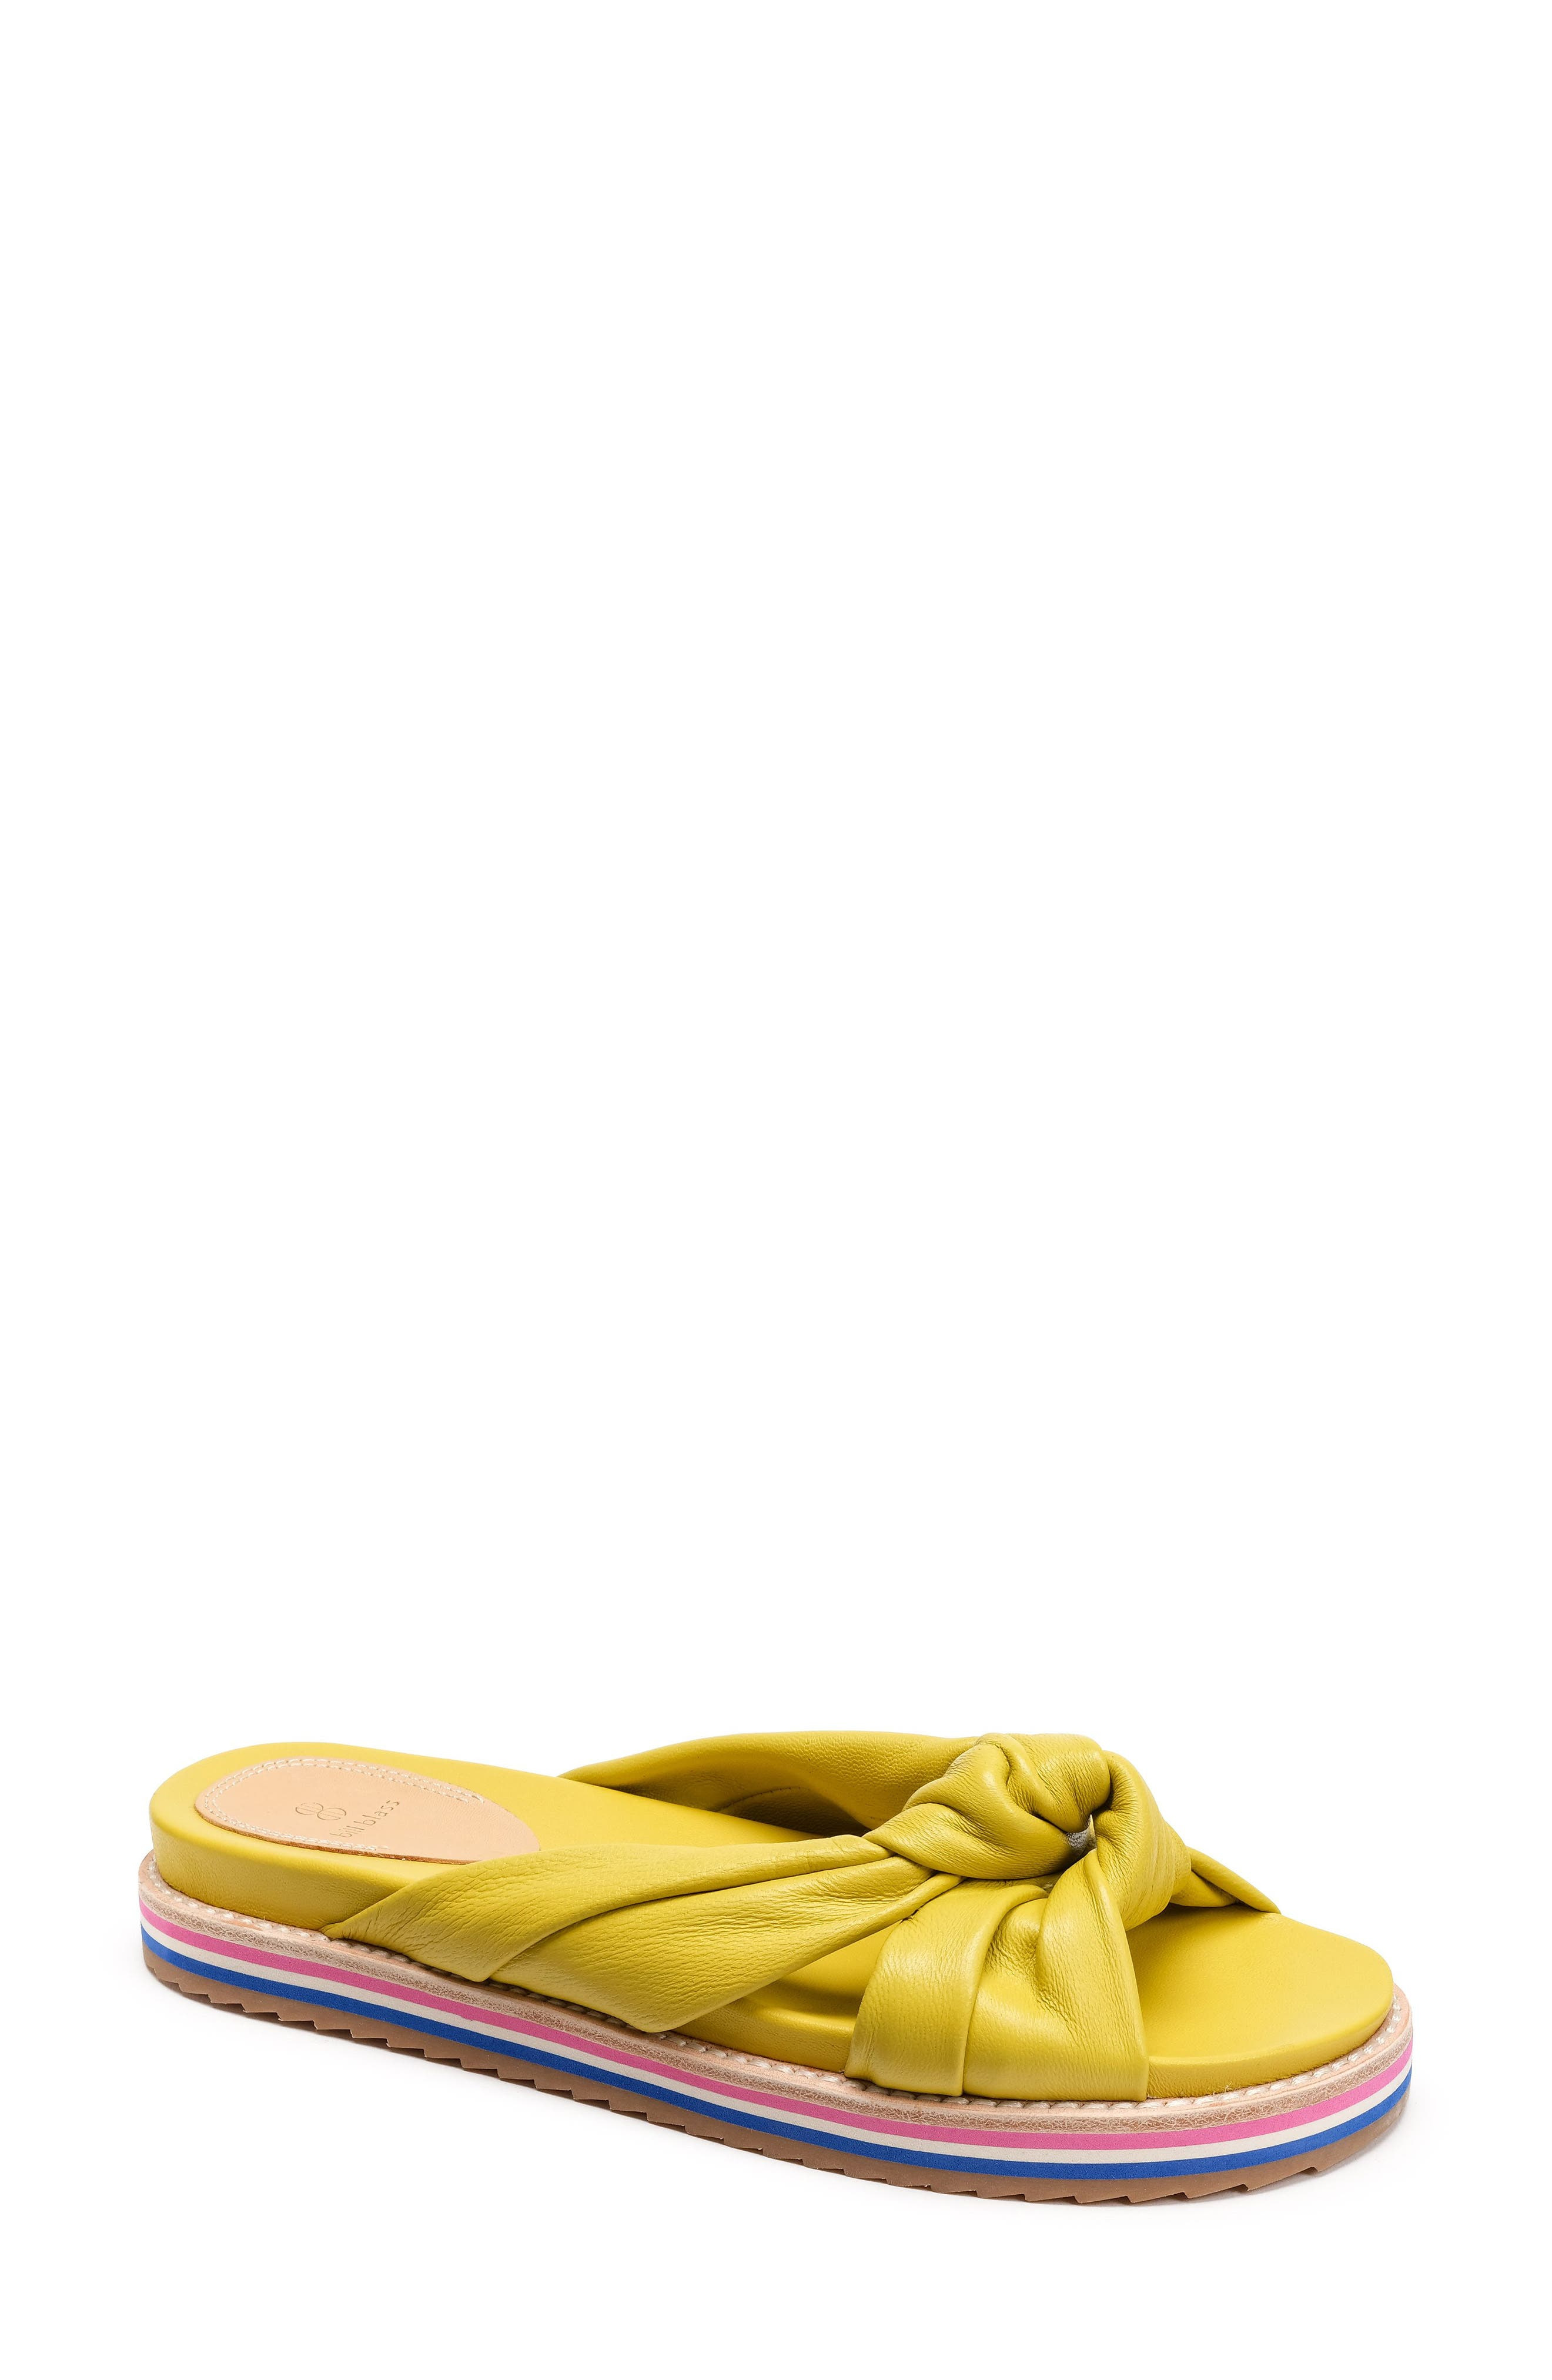 Padget Knotted Slide Sandal,                             Main thumbnail 2, color,